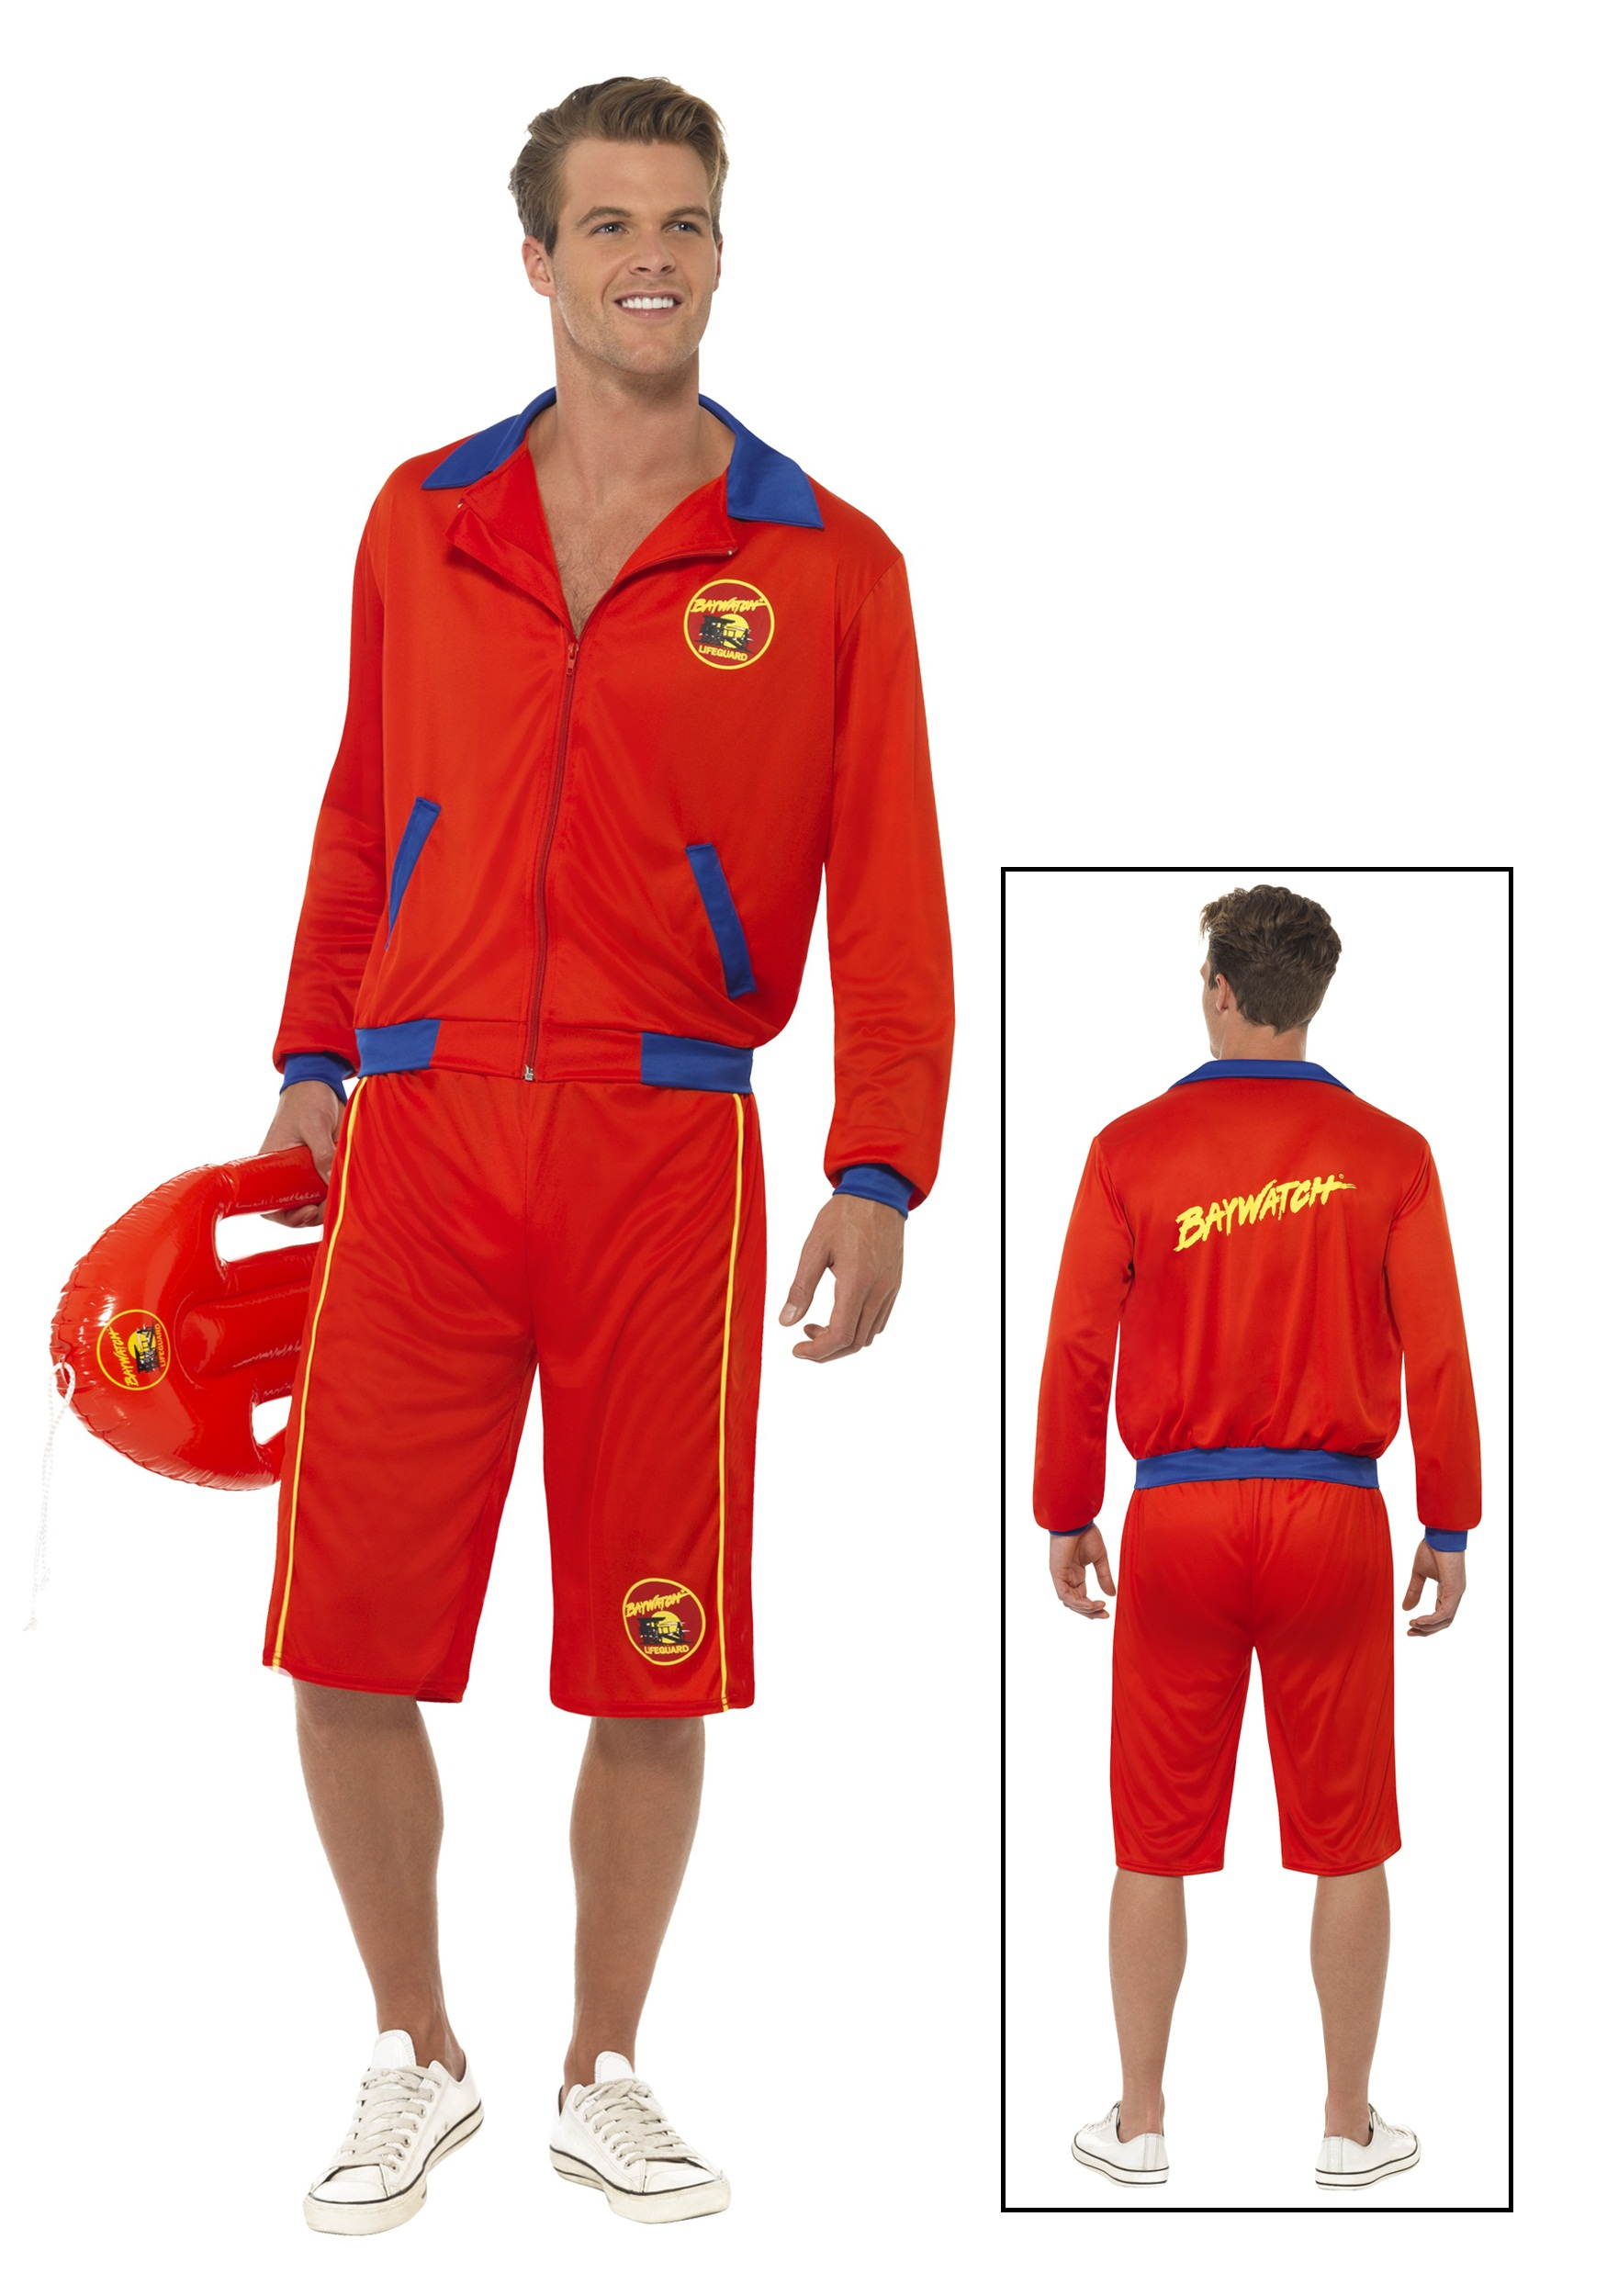 Baywatch Beach Mens Lifeguard Costume  sc 1 st  Halloween Costumes & Baywatch Beach Menu0027s Lifeguard Costume